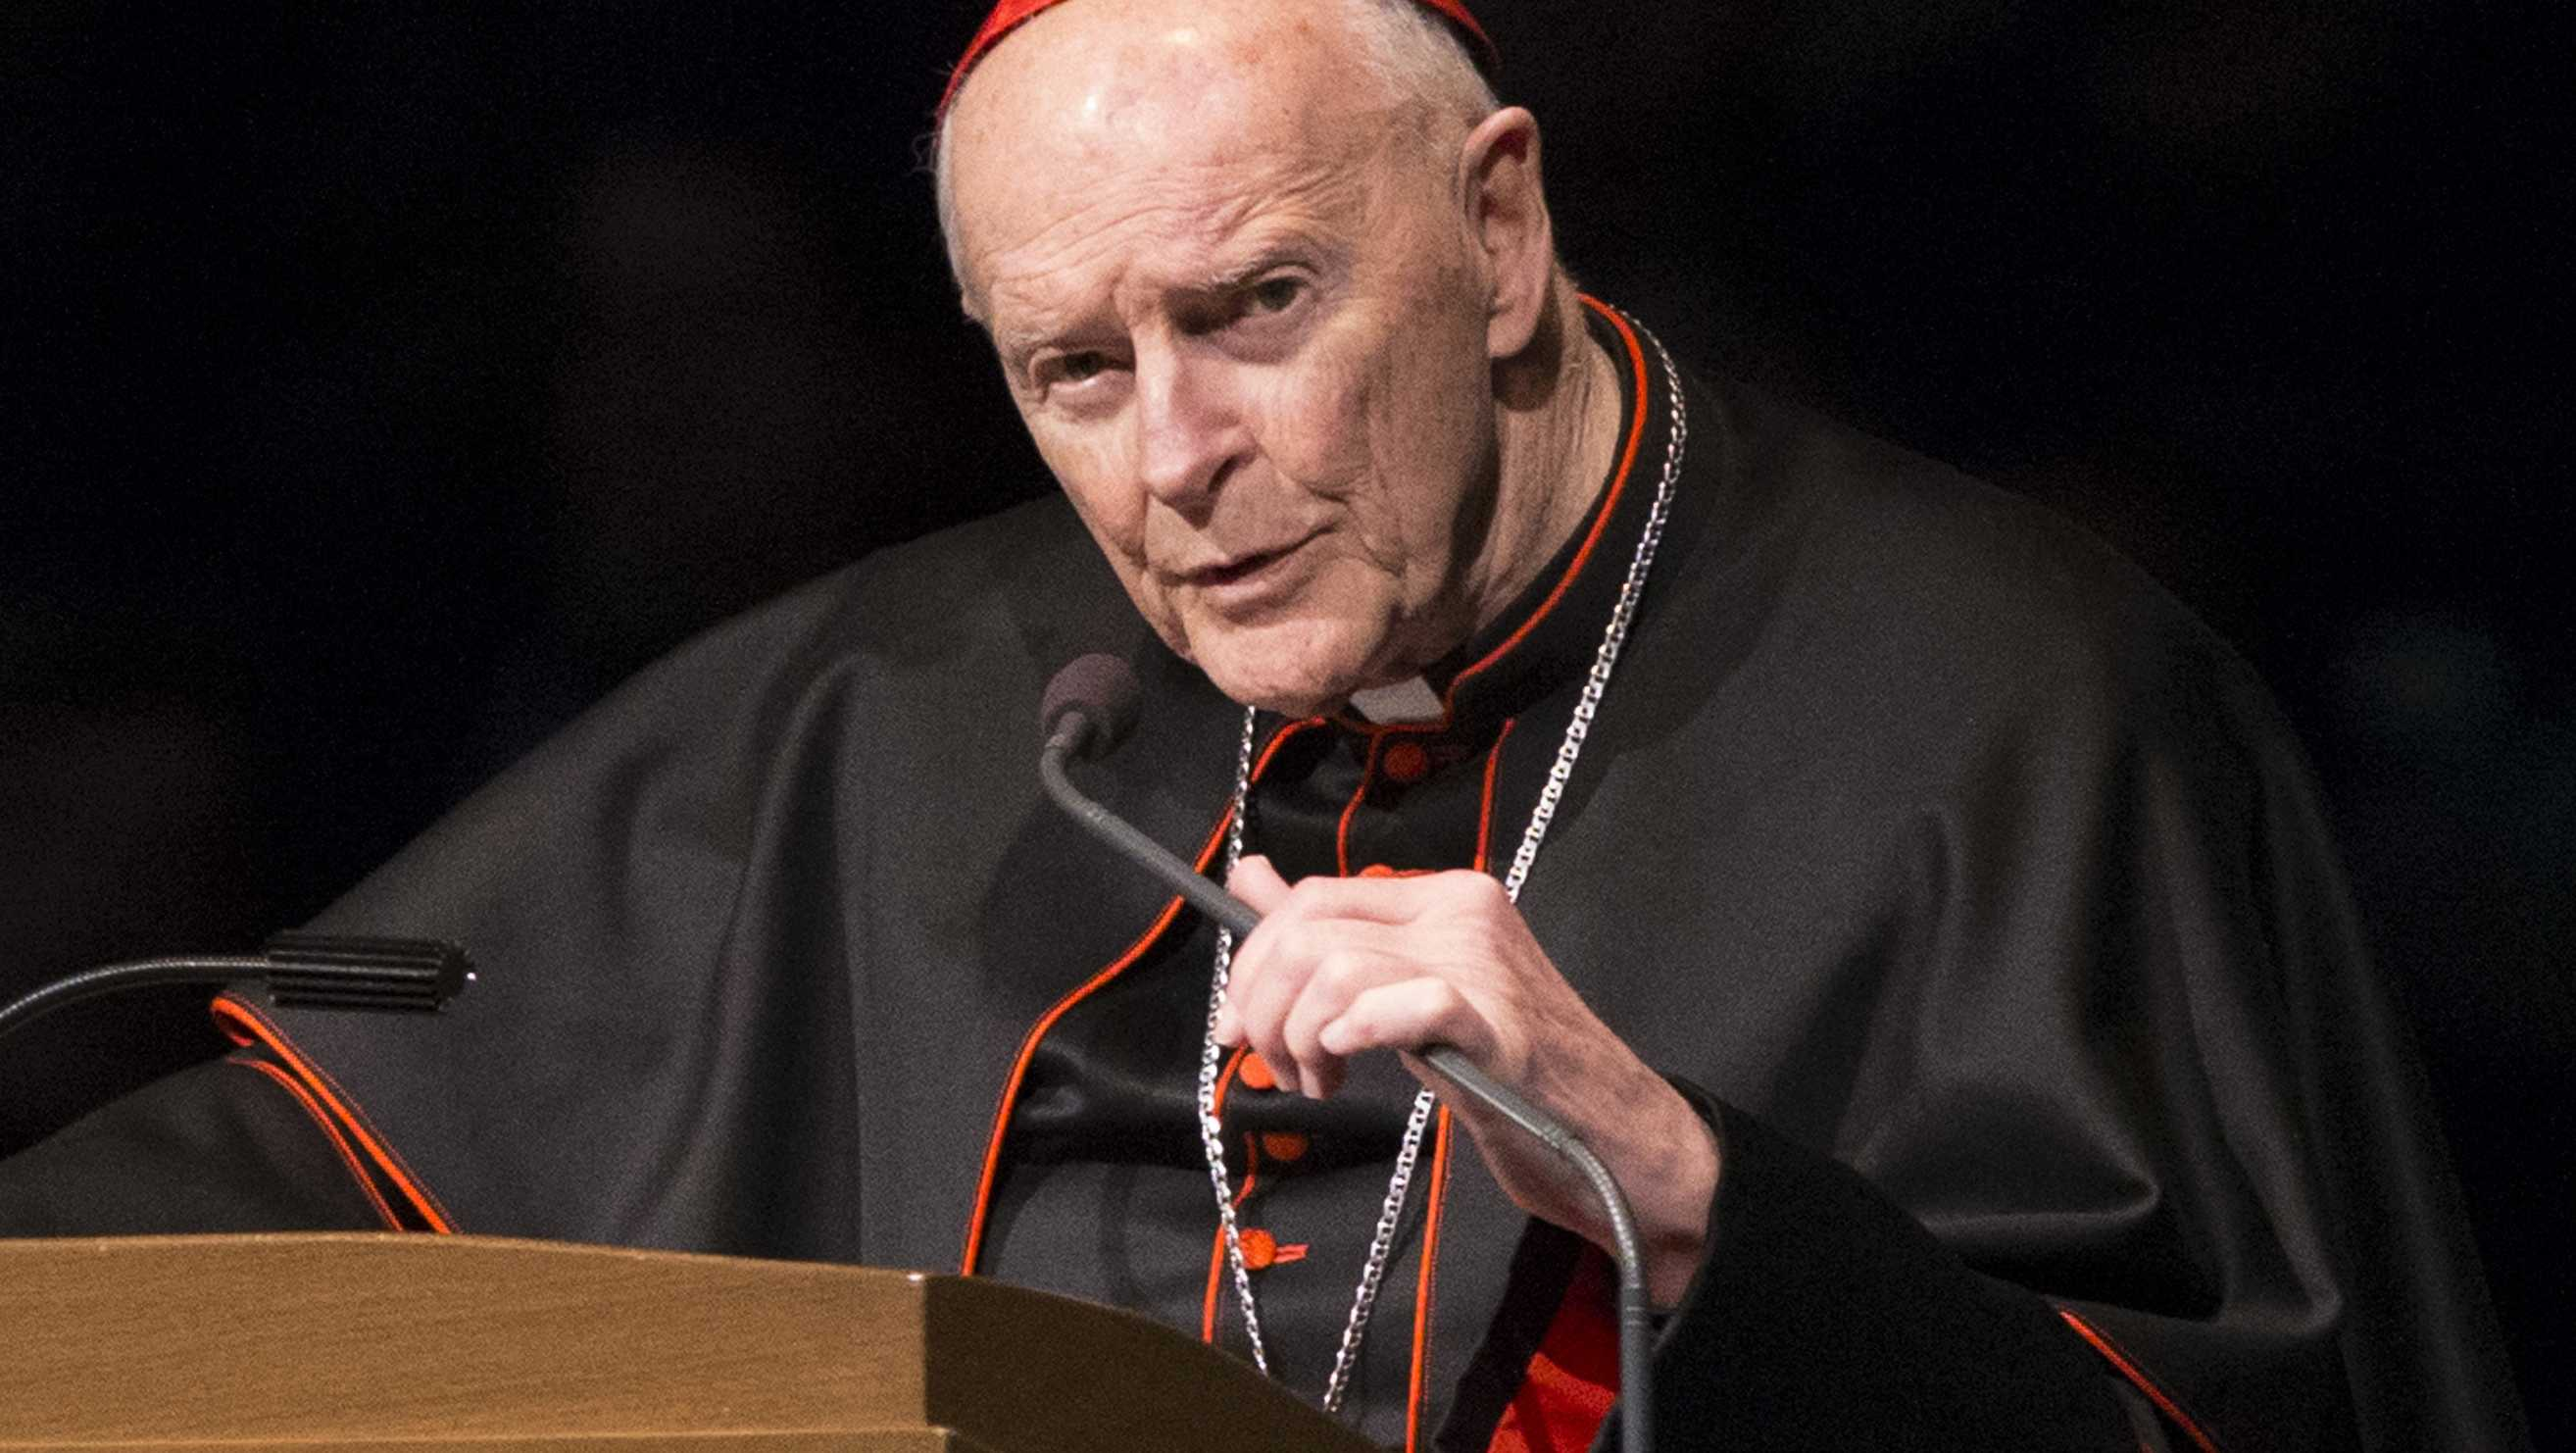 "FILE - In this Wednesday, March 4, 2015, file photo, Cardinal Theodore Edgar McCarrick speaks during a memorial service in South Bend, Ind. Pope Francis has accepted U.S. prelate Theodore McCarrick's offer to resign from the College of Cardinals following allegations of sexual abuse, including one involving an 11-year-old boy, and ordered him to conduct a ""life of prayer and penance"" in a home to be designated by the pontiff until a church trial is held, the Vatican said Saturday, July 28, 2018."